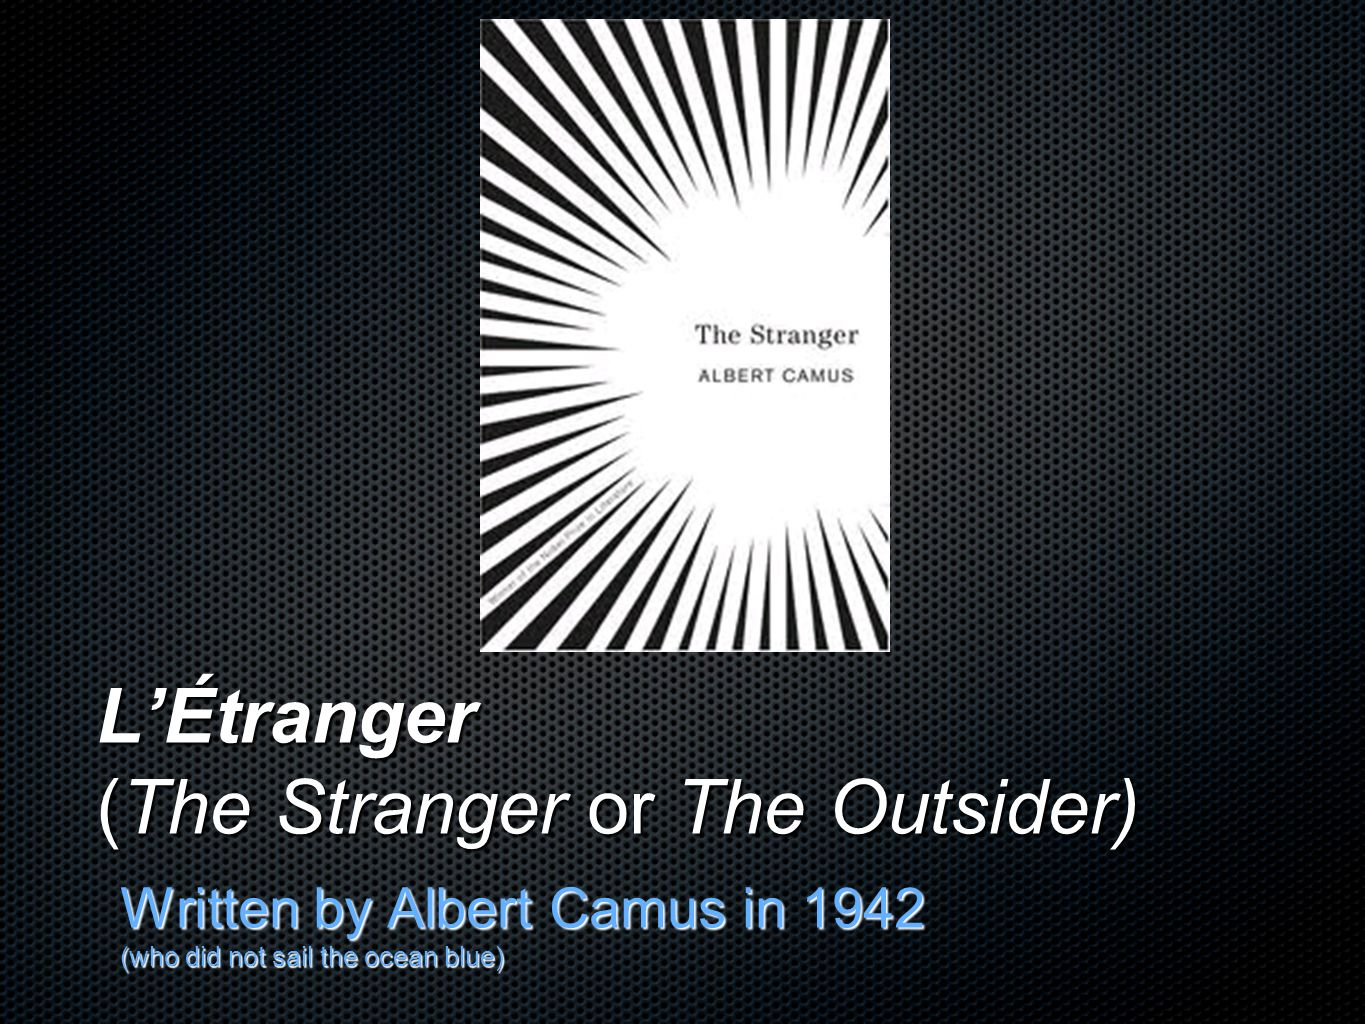 "camus the outsider vs bolts a The outsider: meursault ""heroic but hardly admirable"" » the outsider by albert camus v » camus the outsider vs bolts a » patterns in hemingway and camu."